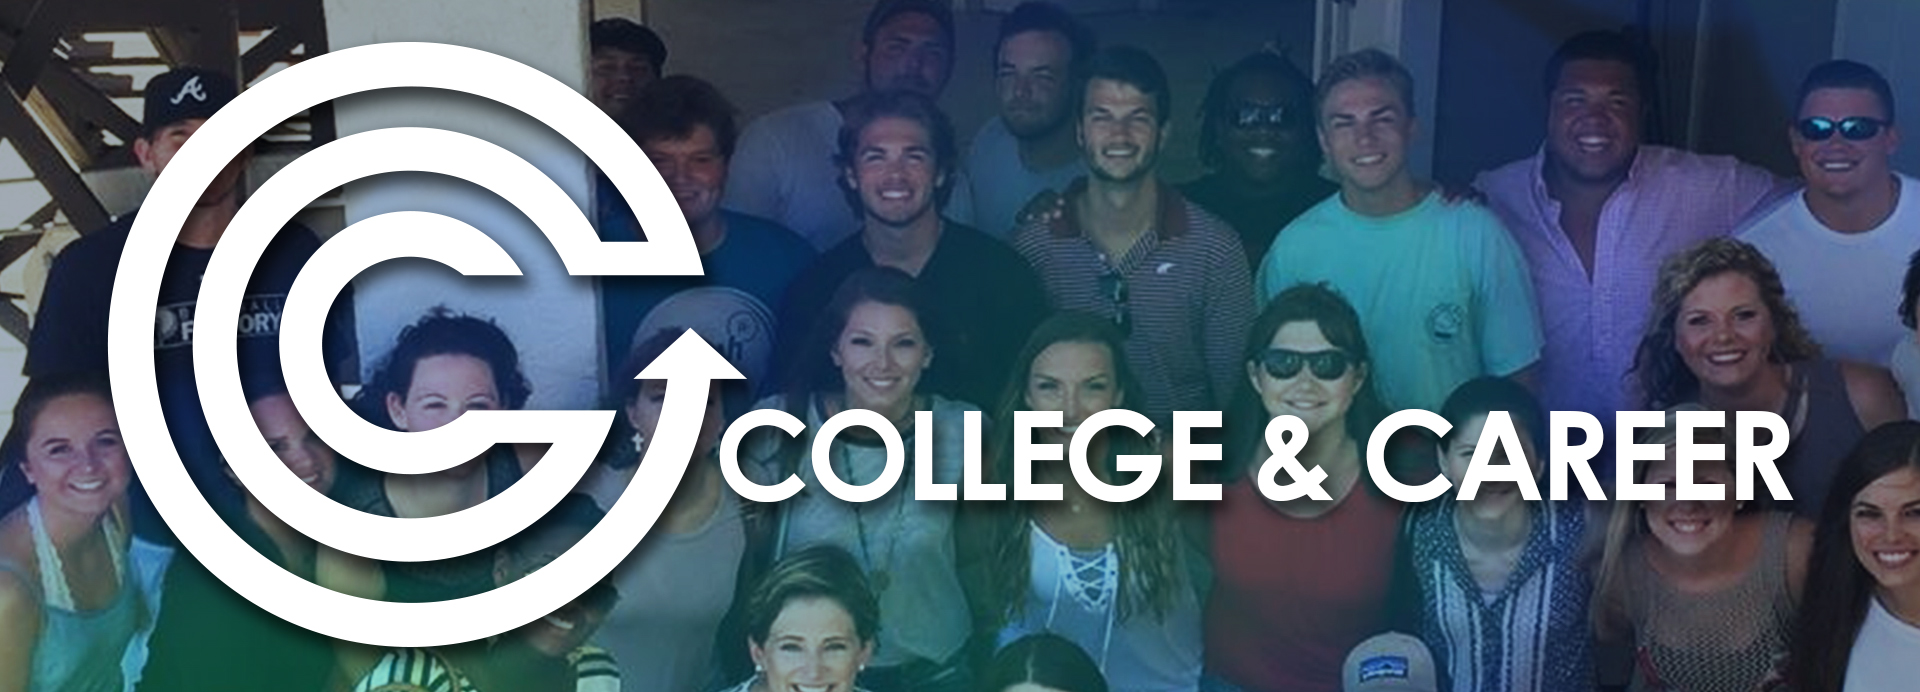 College and Career - Banner.jpg